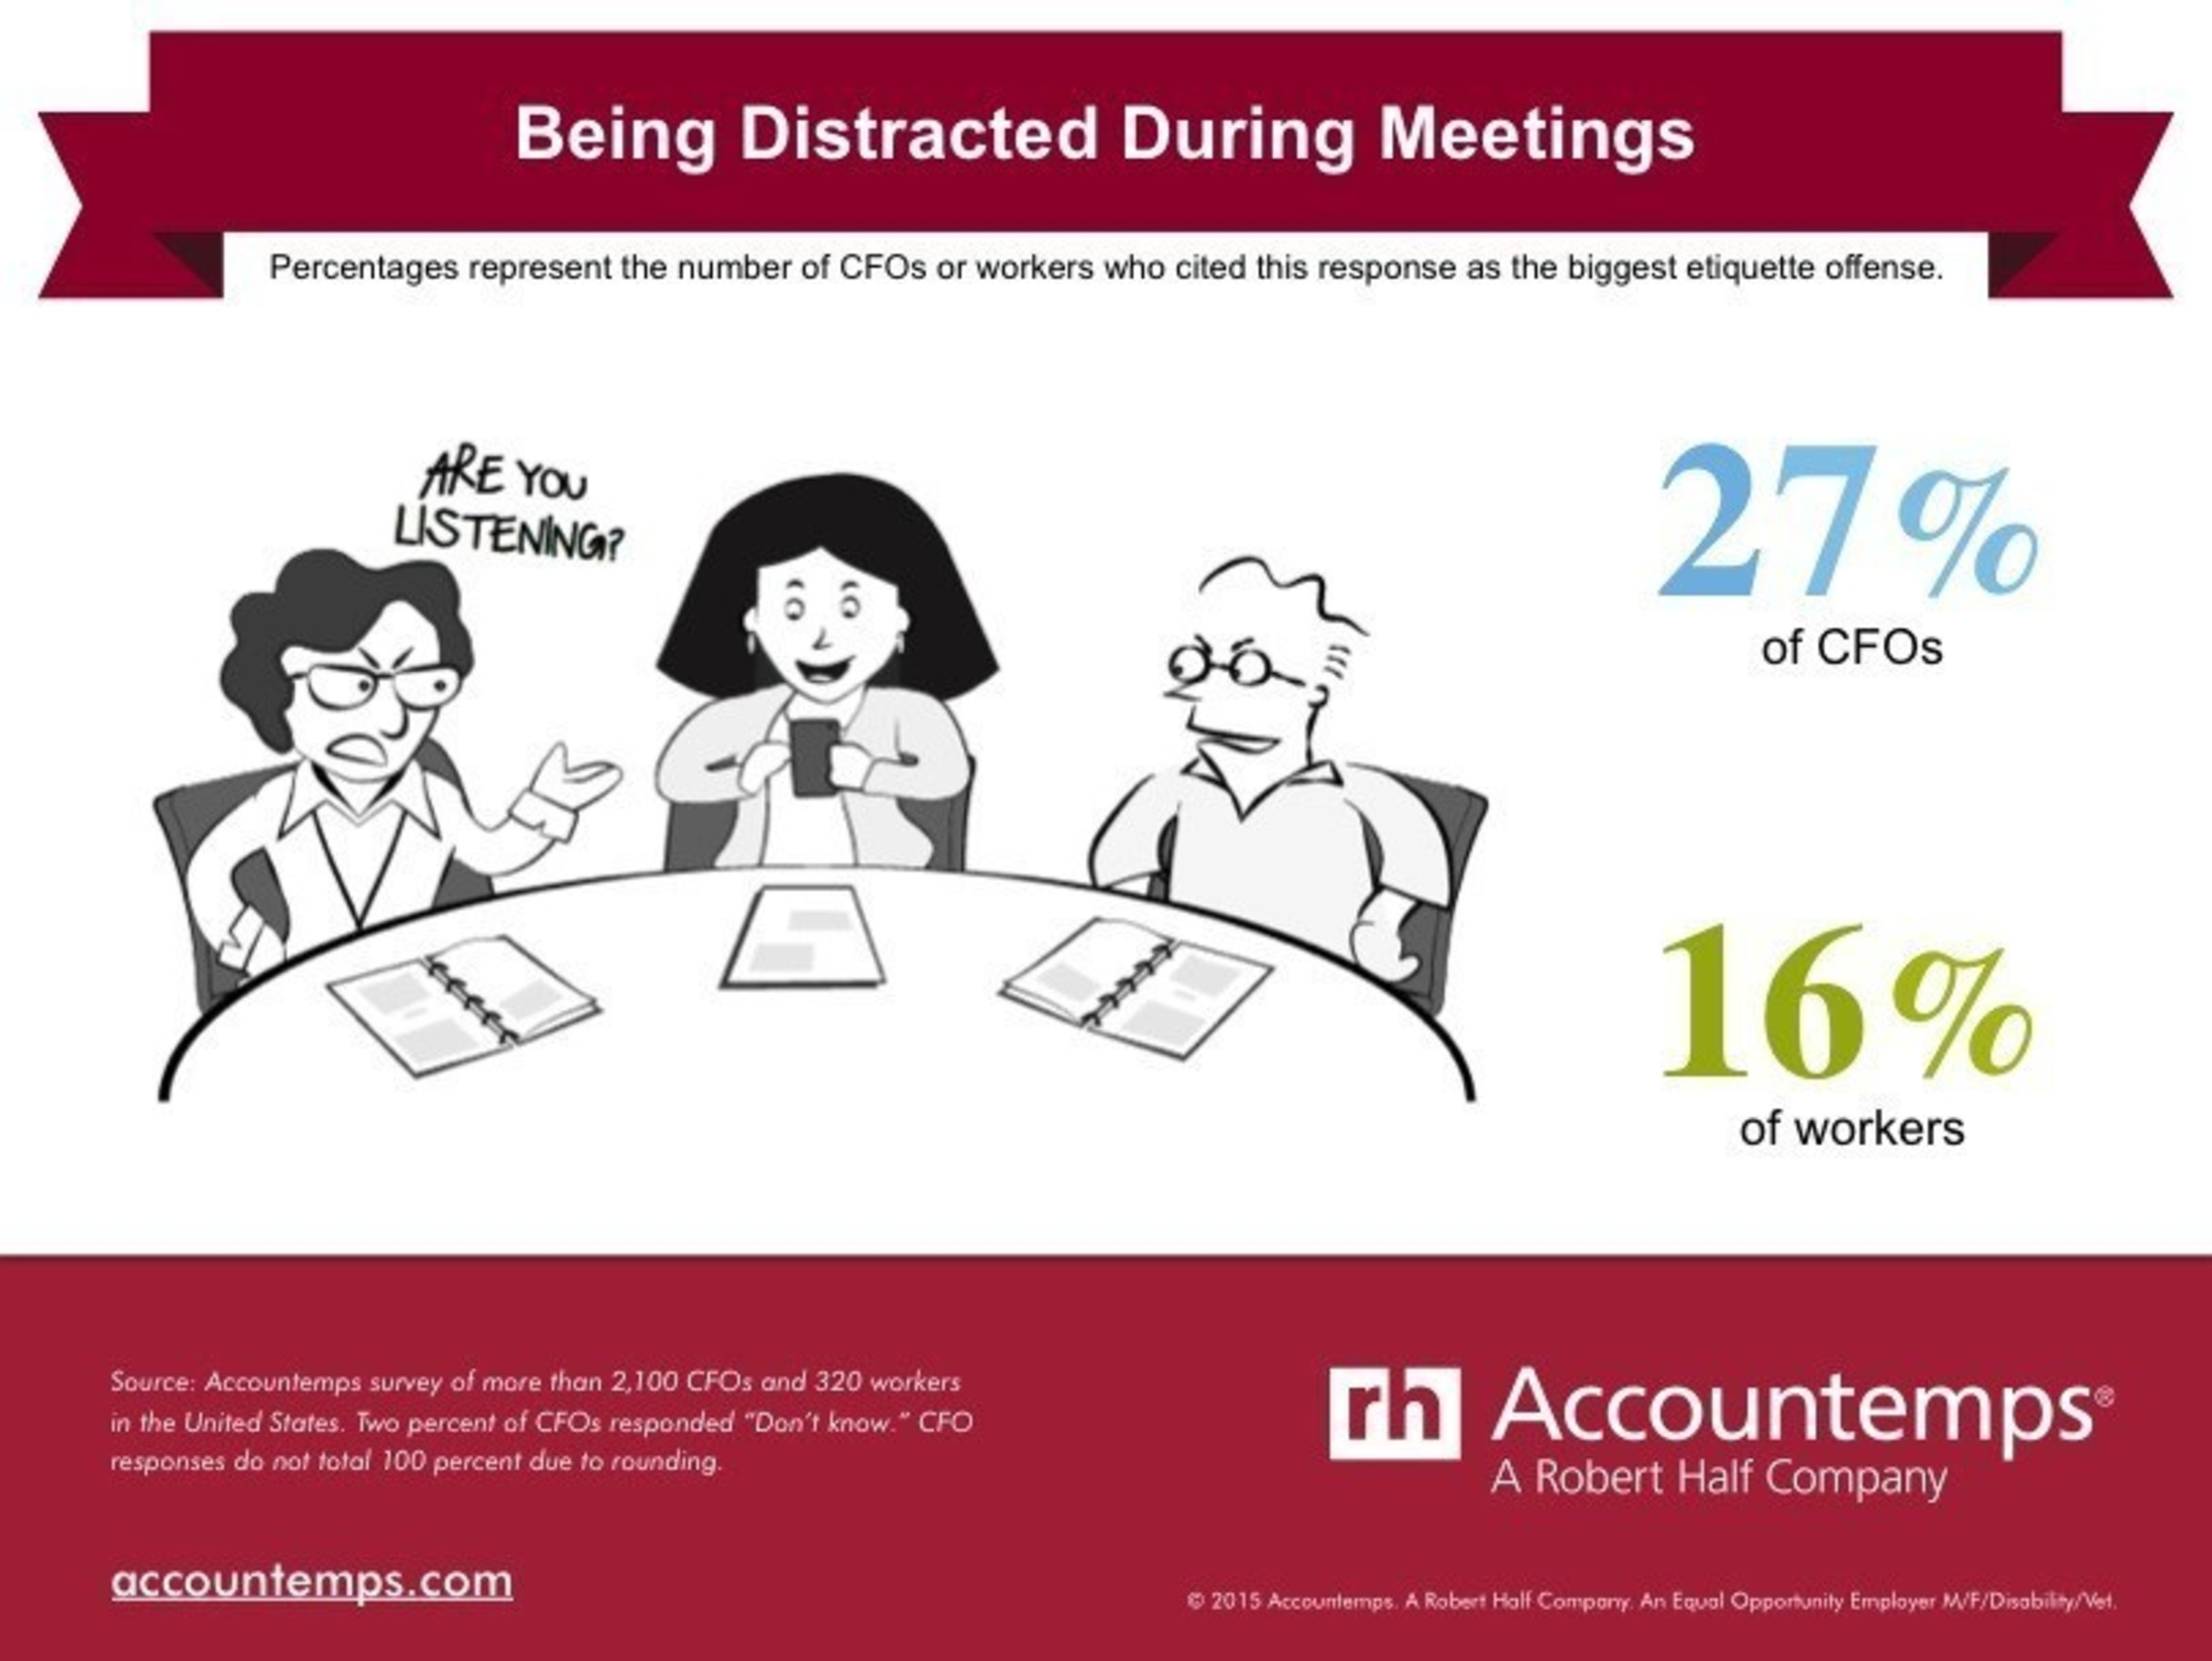 Twenty-seven percent of CFOs said the most common workplace etiquette offense is being distracted during ...